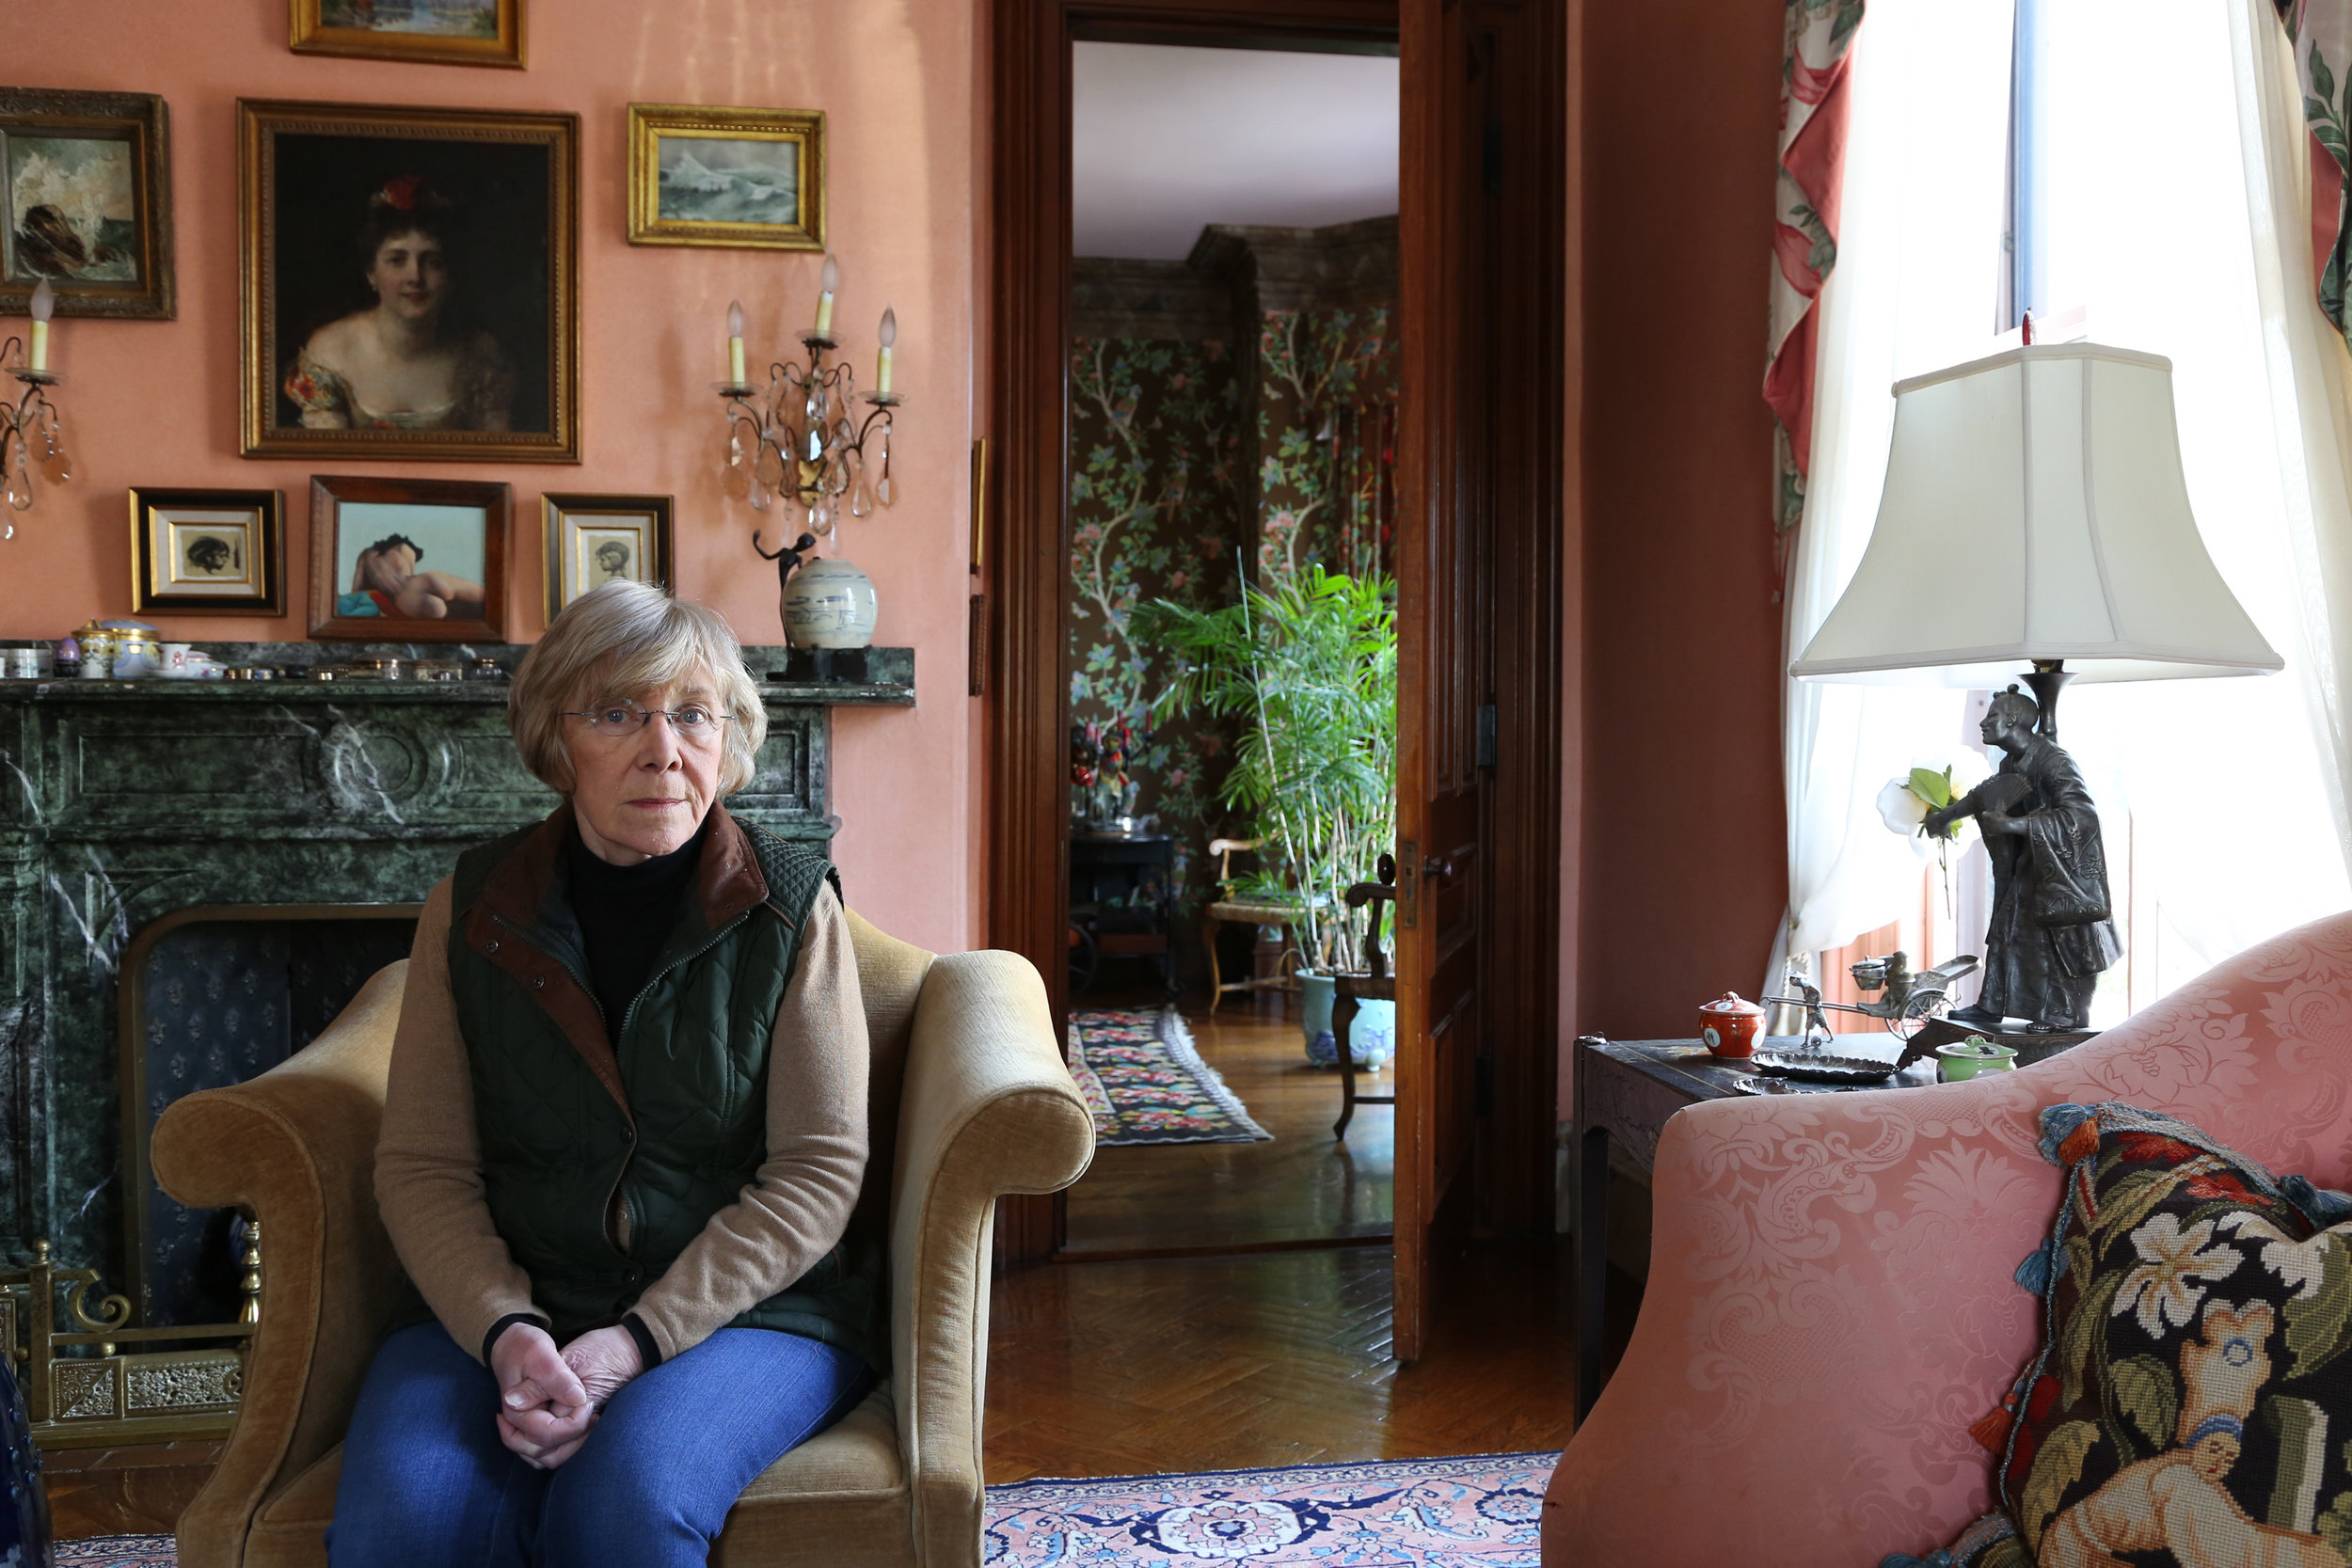 Consuelo Isaacson , a community organizer who fled Cuba in 1960. Feb. 1, 2019, in Cambridge, Massachusetts. ( The GroundTruth Project )